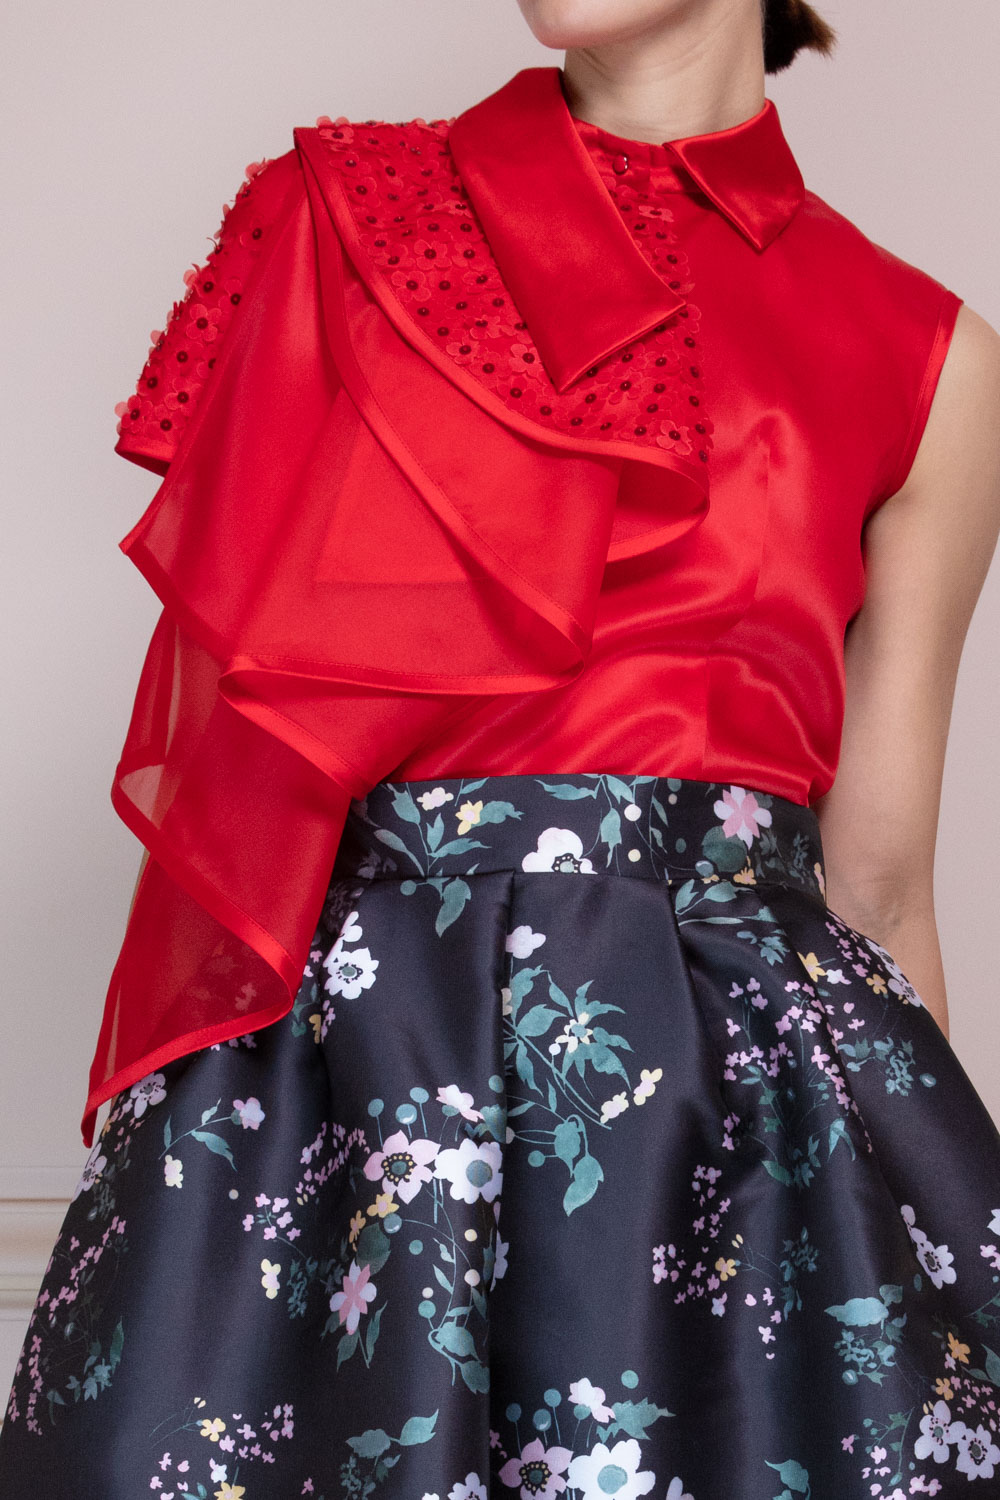 Silk organza top with couture draping embellished with silk flowers with sequins centres